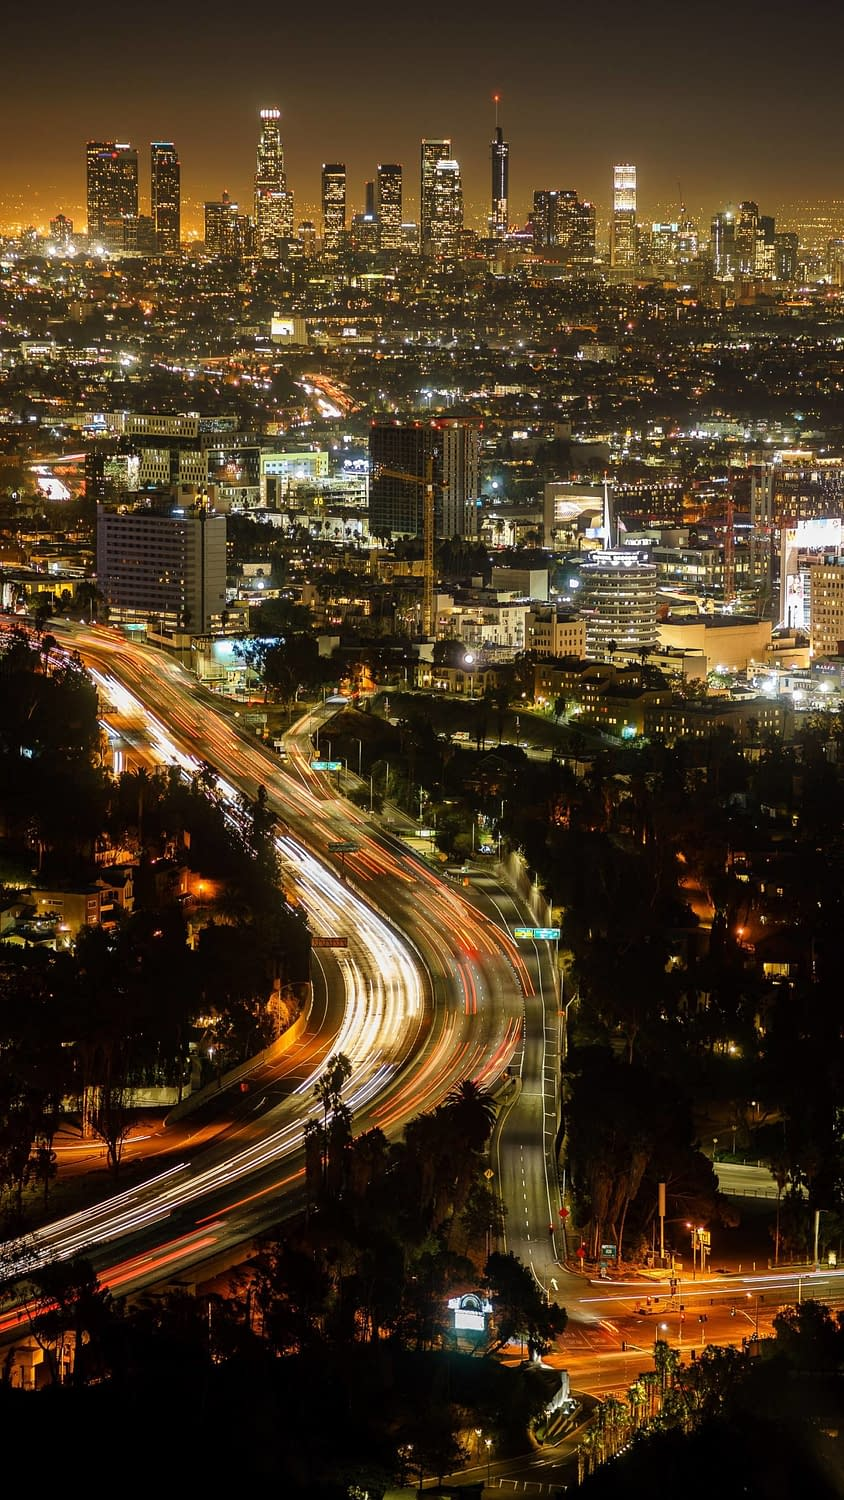 An overhead shot depicting the nightlife found in Los Angeles.